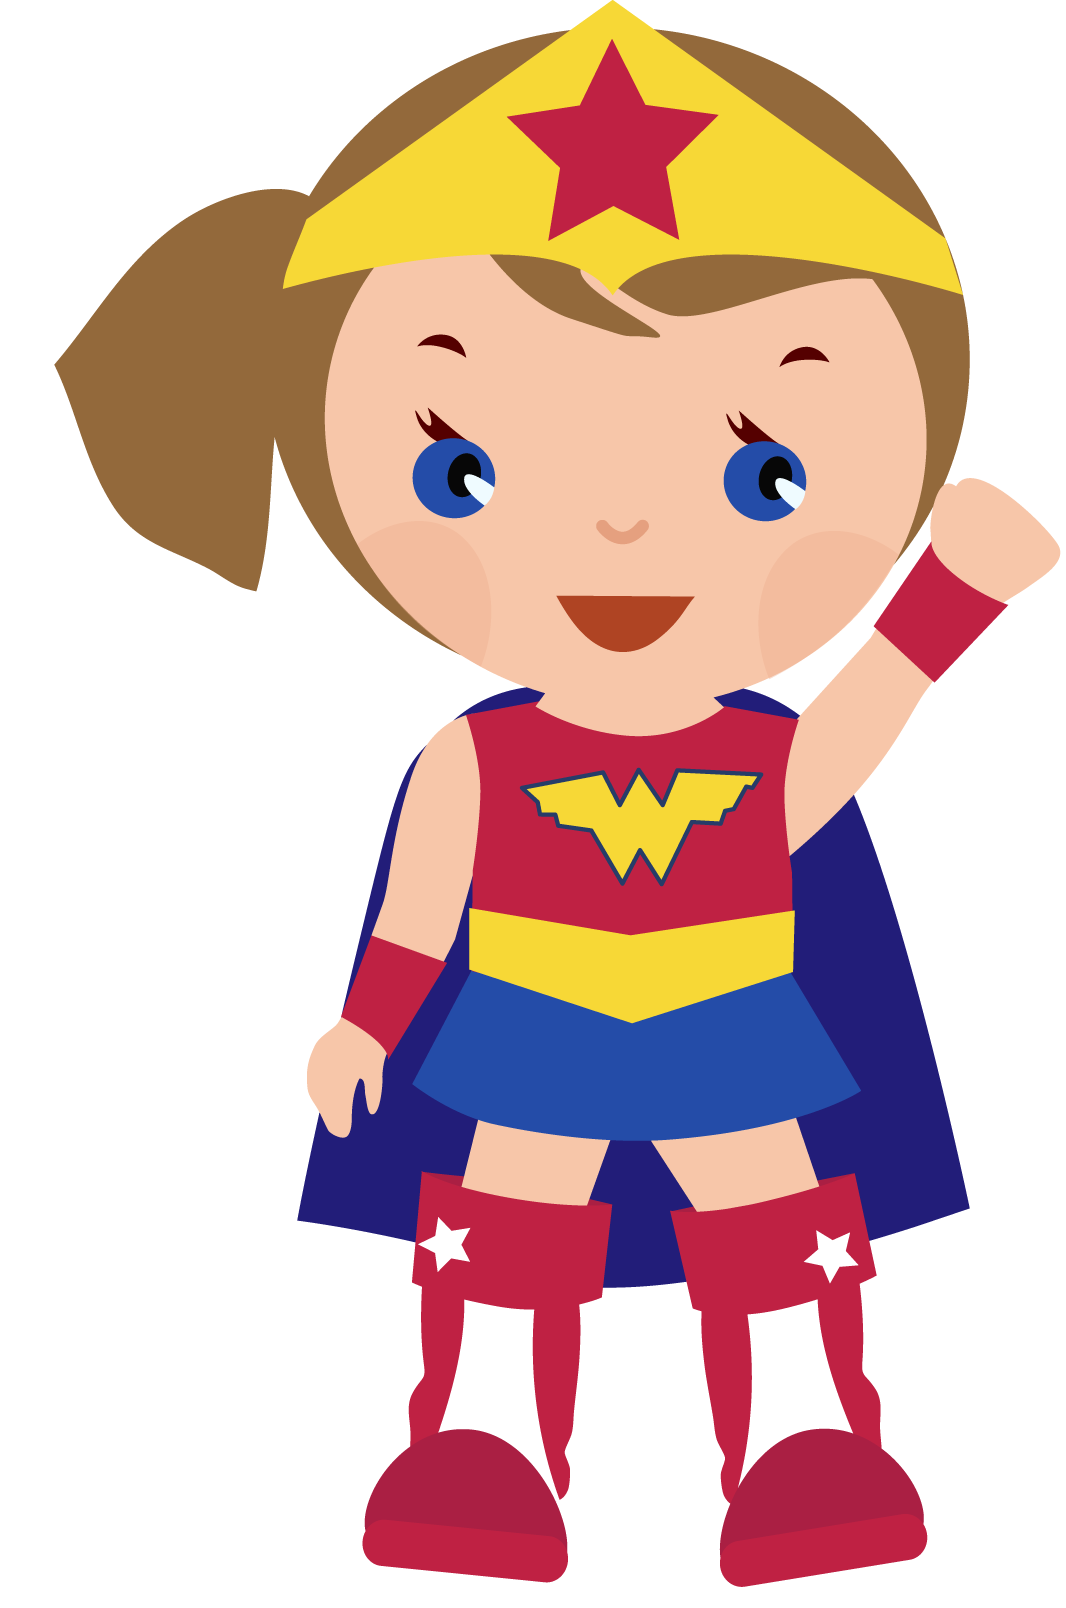 Number clipart superhero. Free flash cliparts download